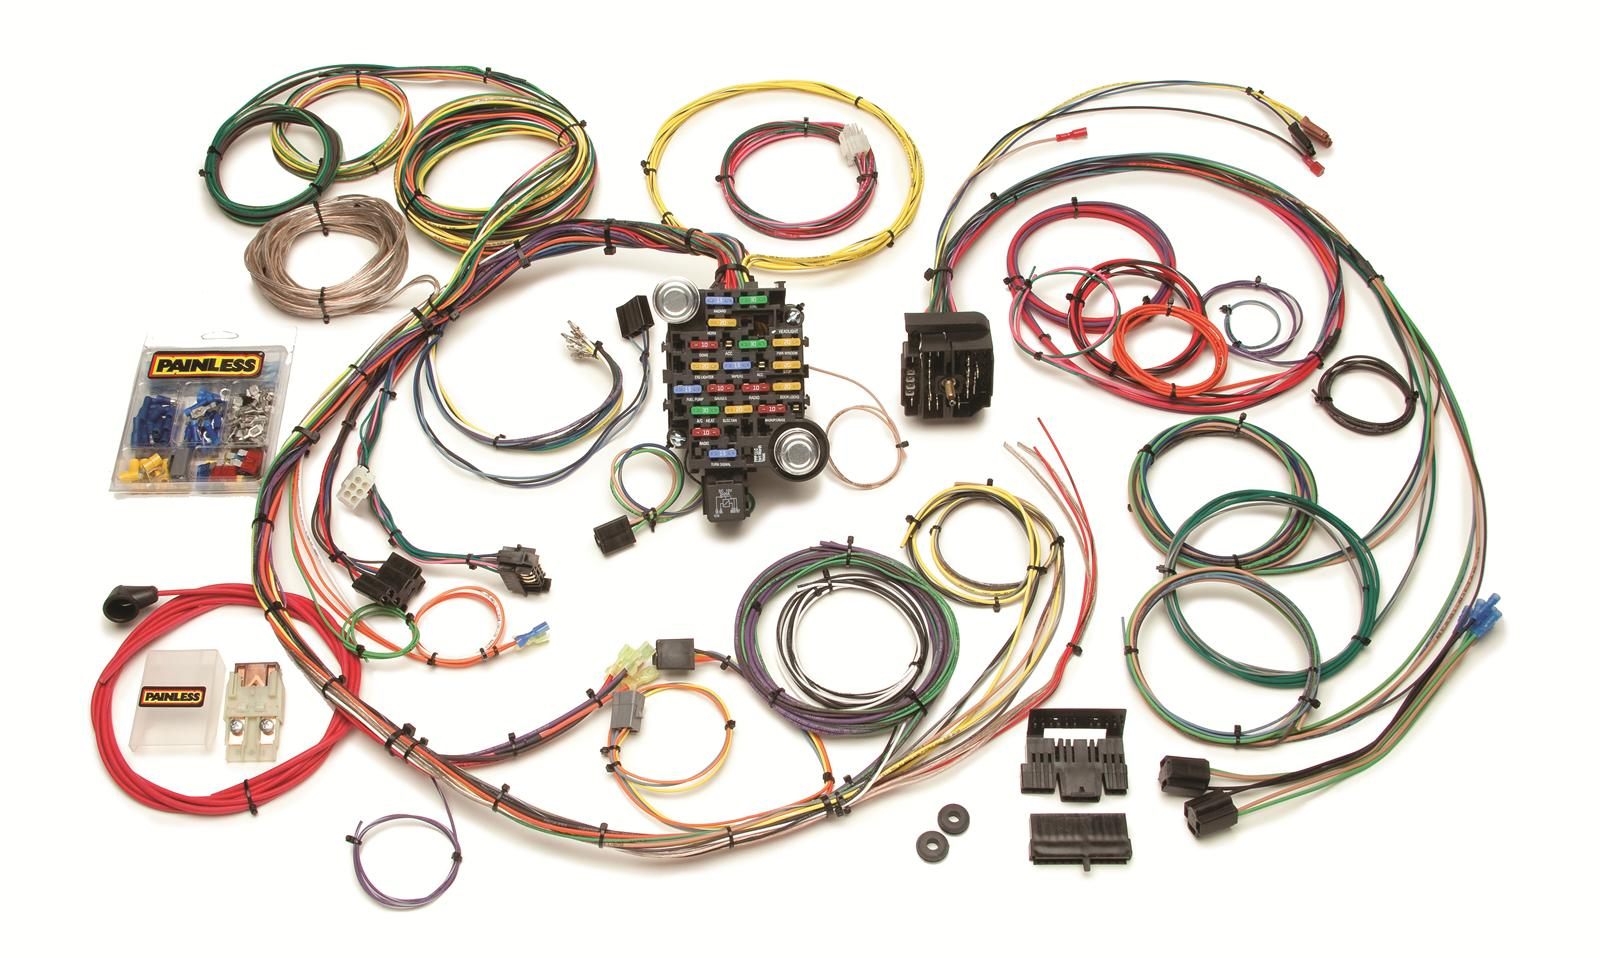 hight resolution of 68 camaro white been an 68 camaro wiring harness diagram mountpainless performance 24 circuit 1967 68